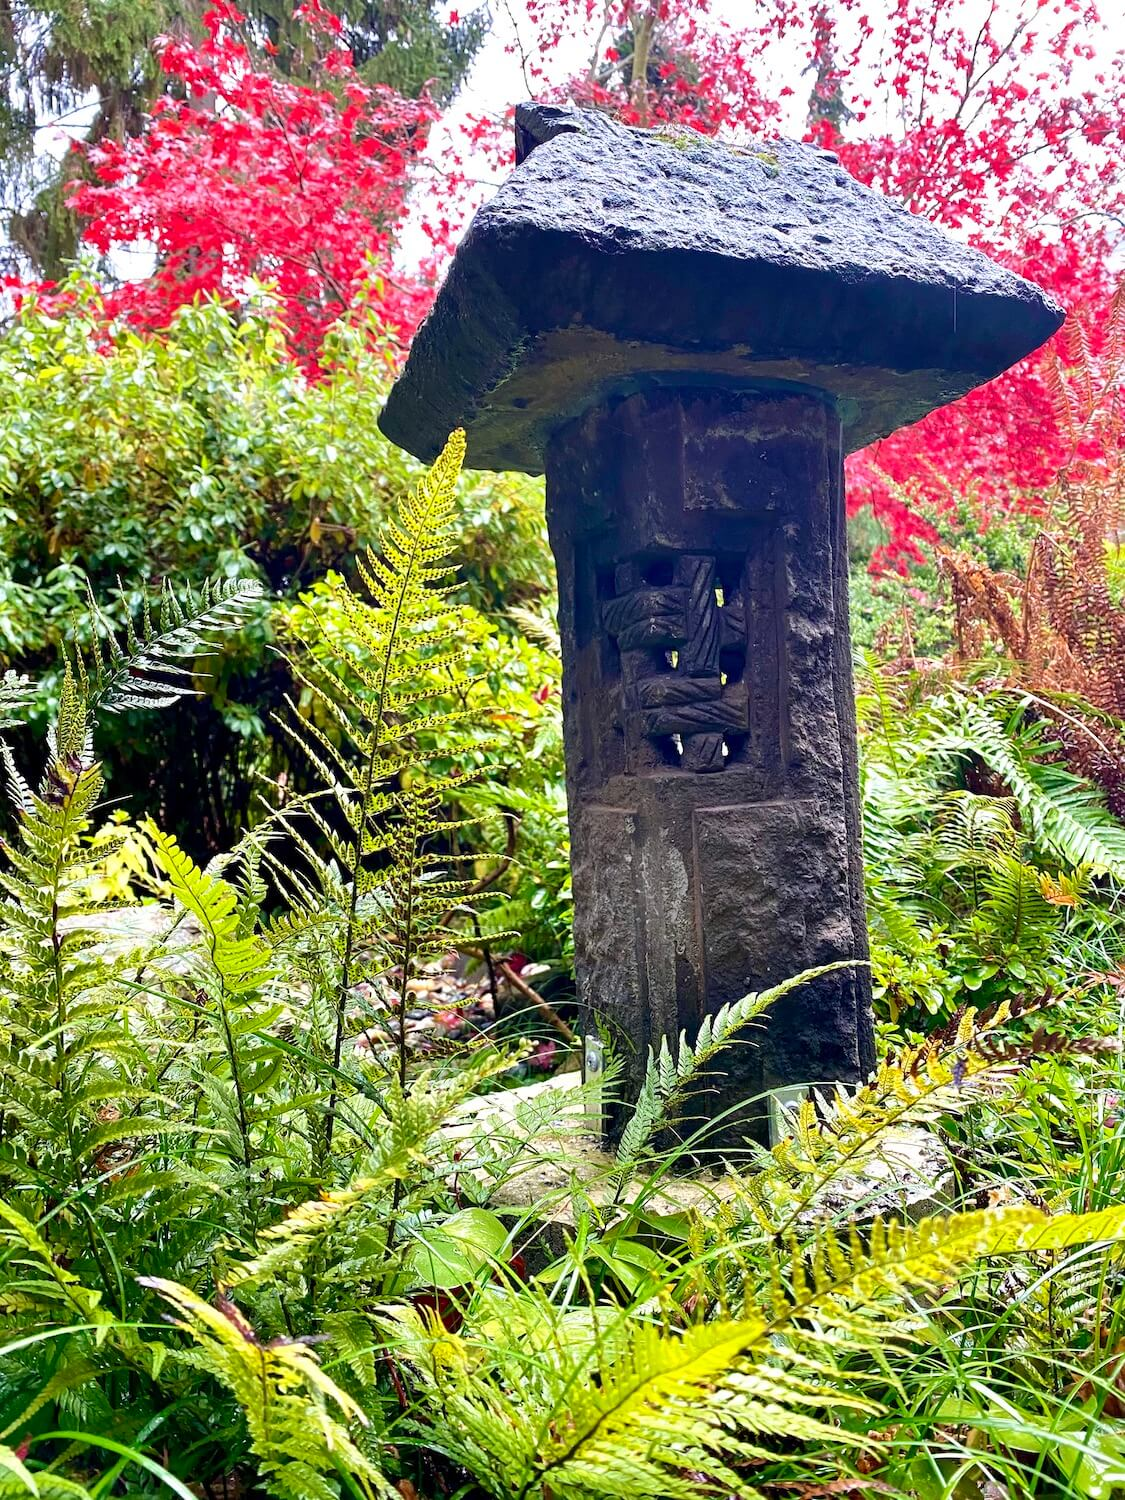 The Japanese tea garden at Seattle Univeristy is subtle and tiny but showcases this lantern carved from stone which is surrounded by bright red maple leaves and green ferns.